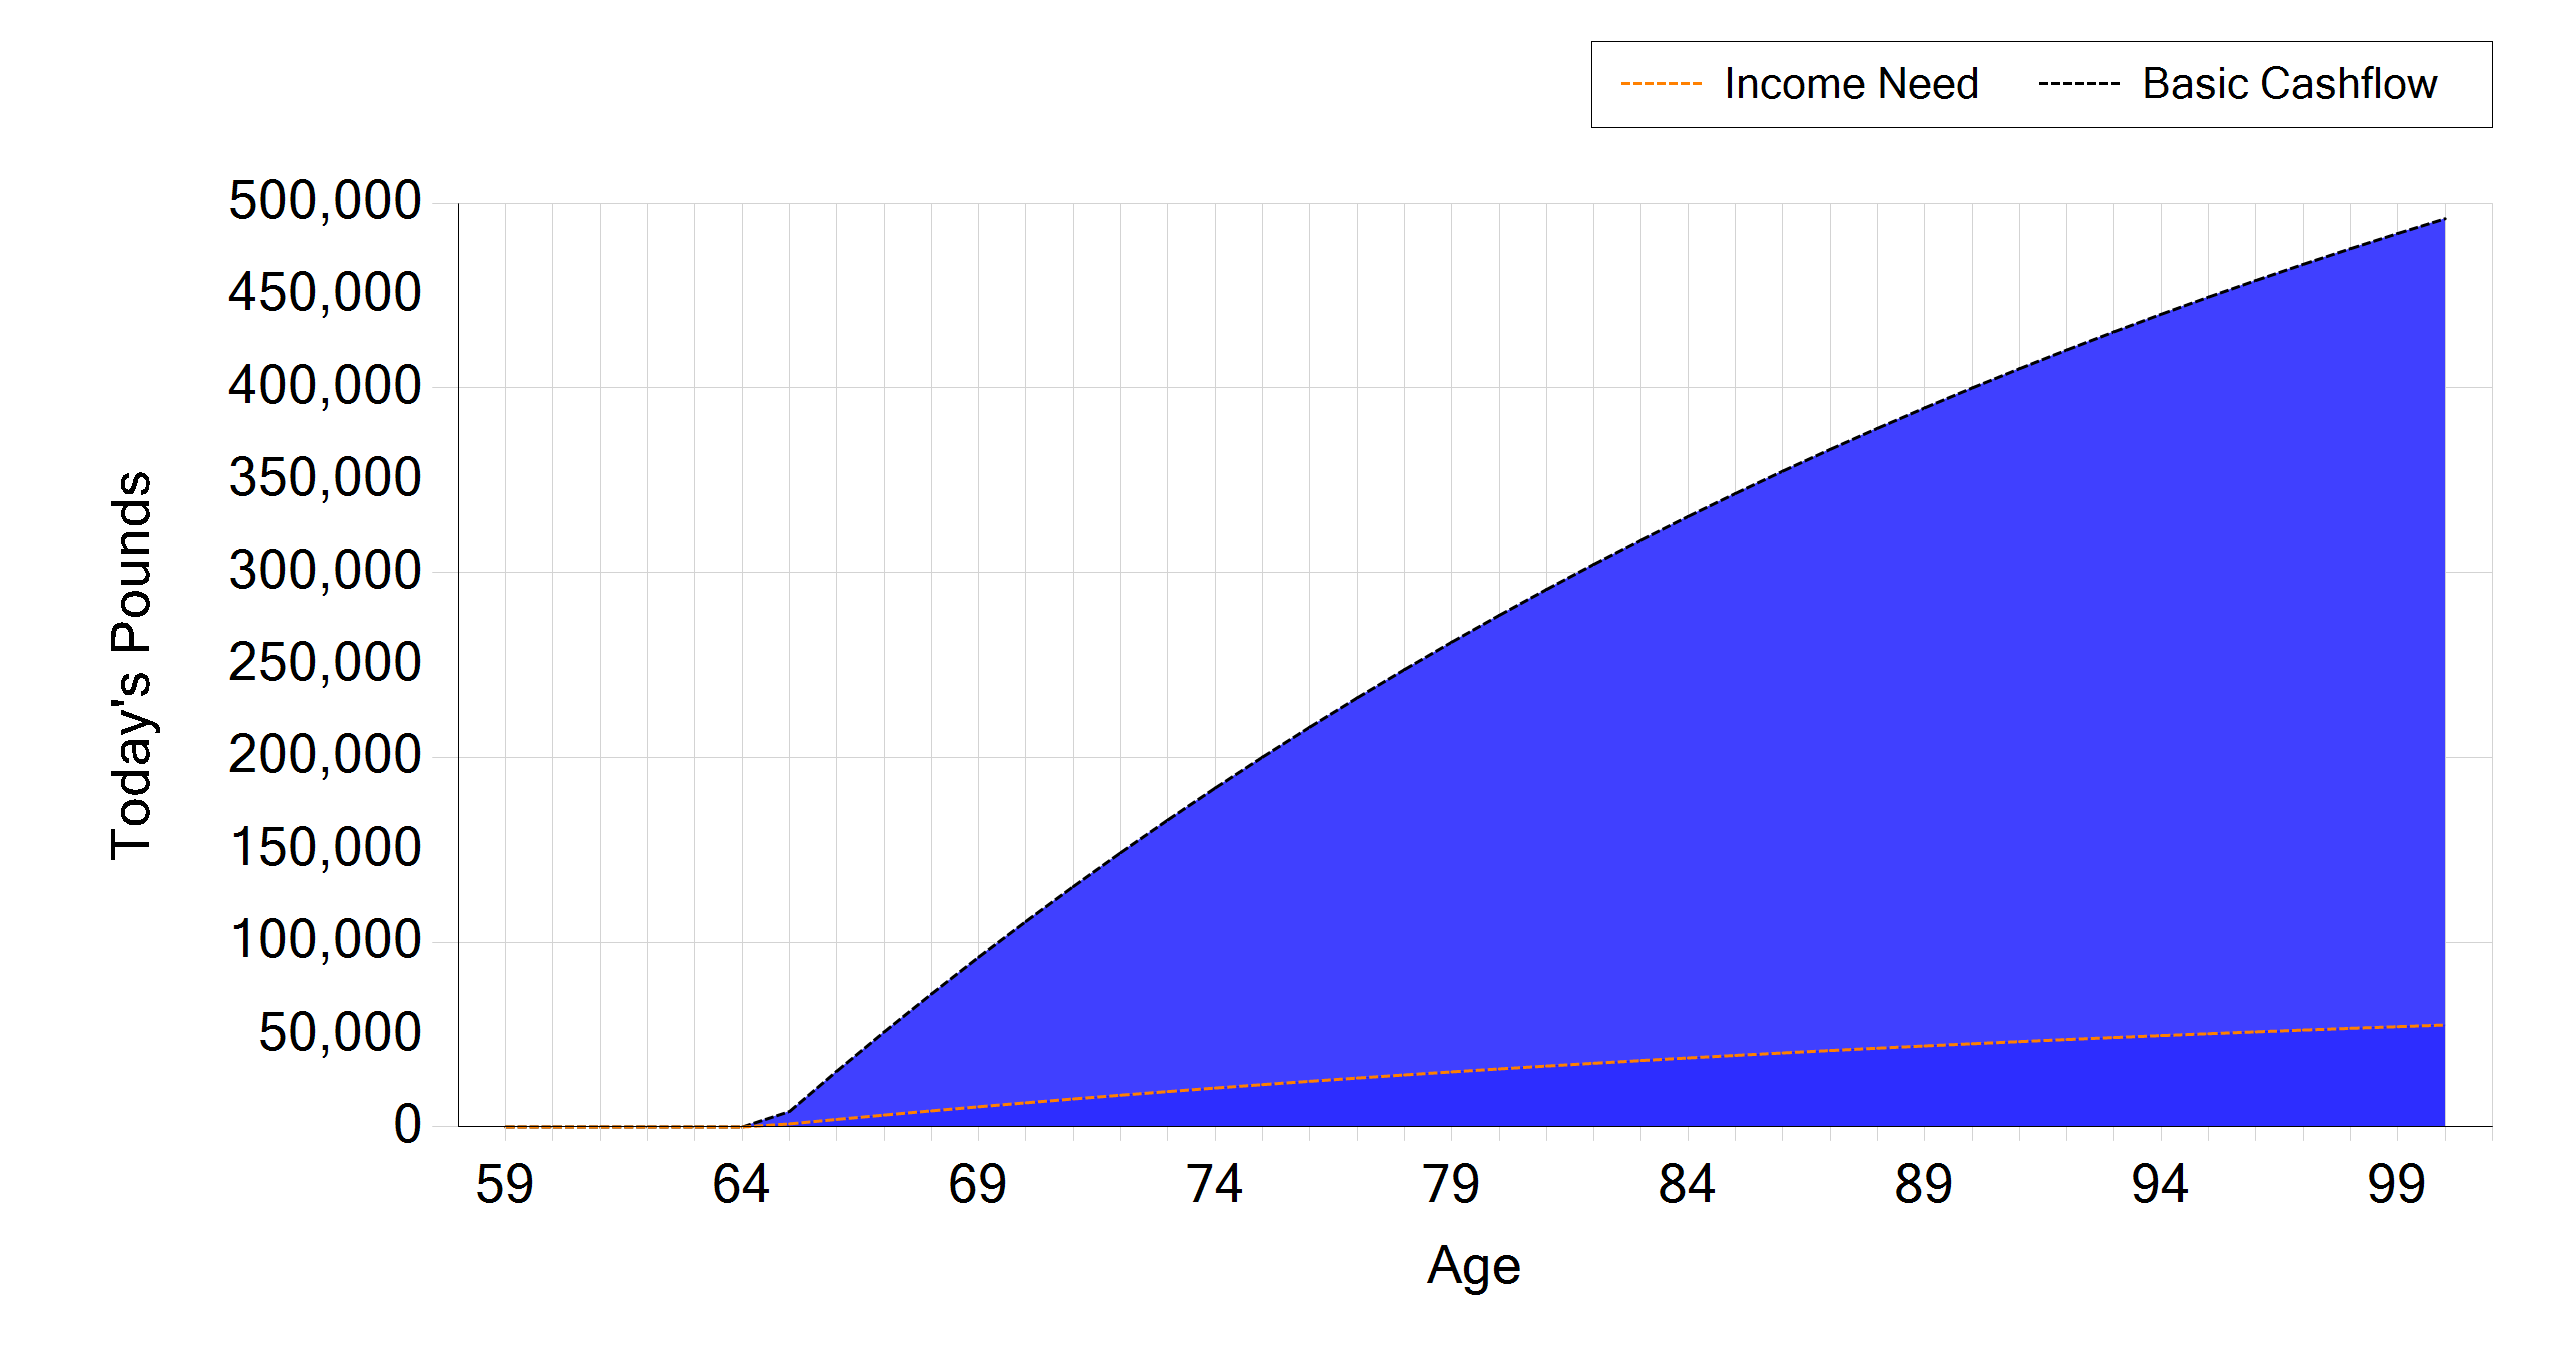 Bob Cashflow 2 income need retirement overlay